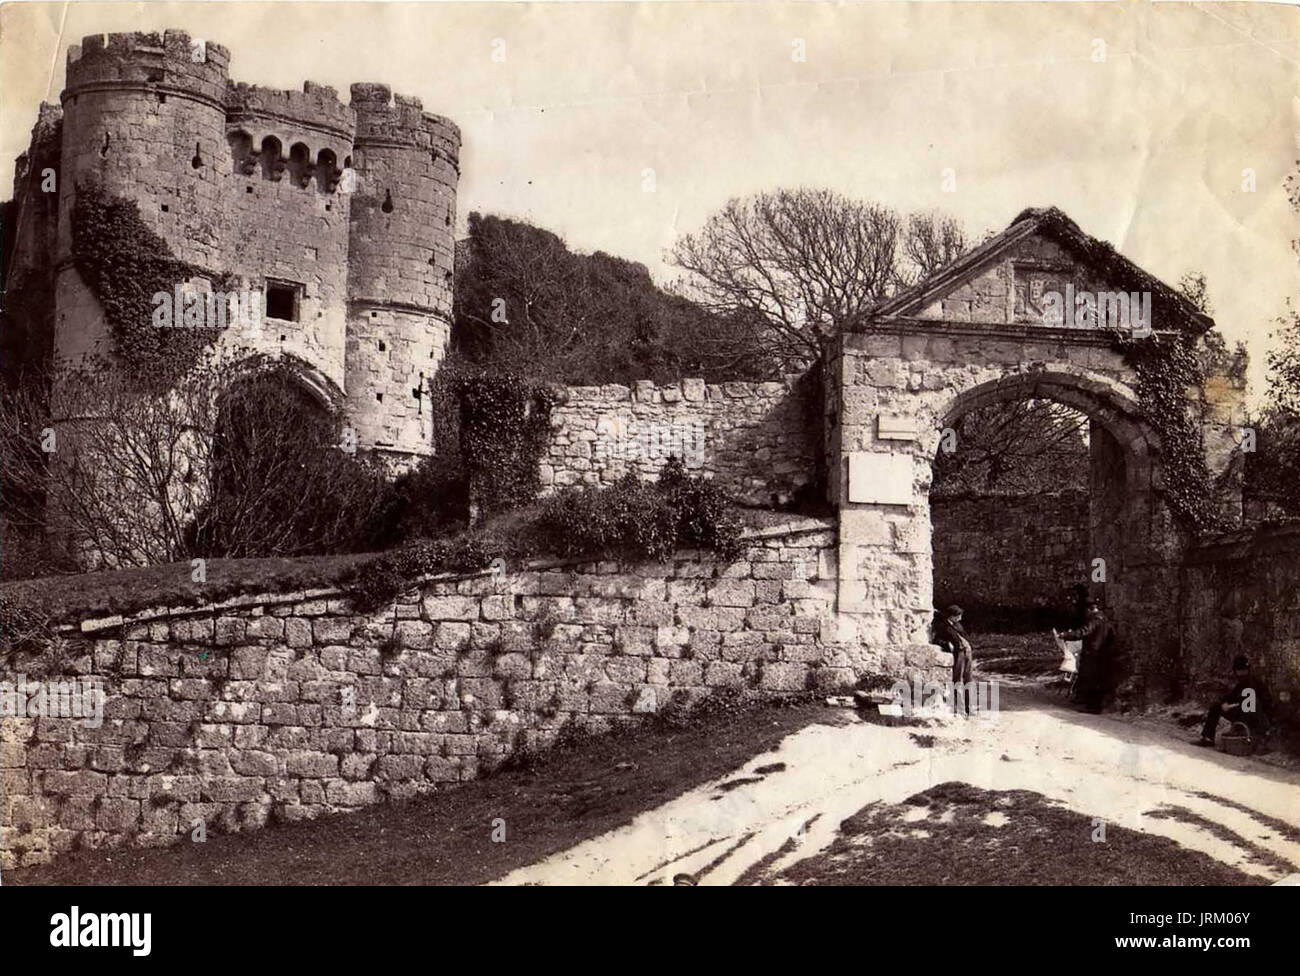 1890's Victorian Albumen topographical photograph of Carisbrooke Castle, Isle of Wight - Entrance and Gatehouse - Stock Image